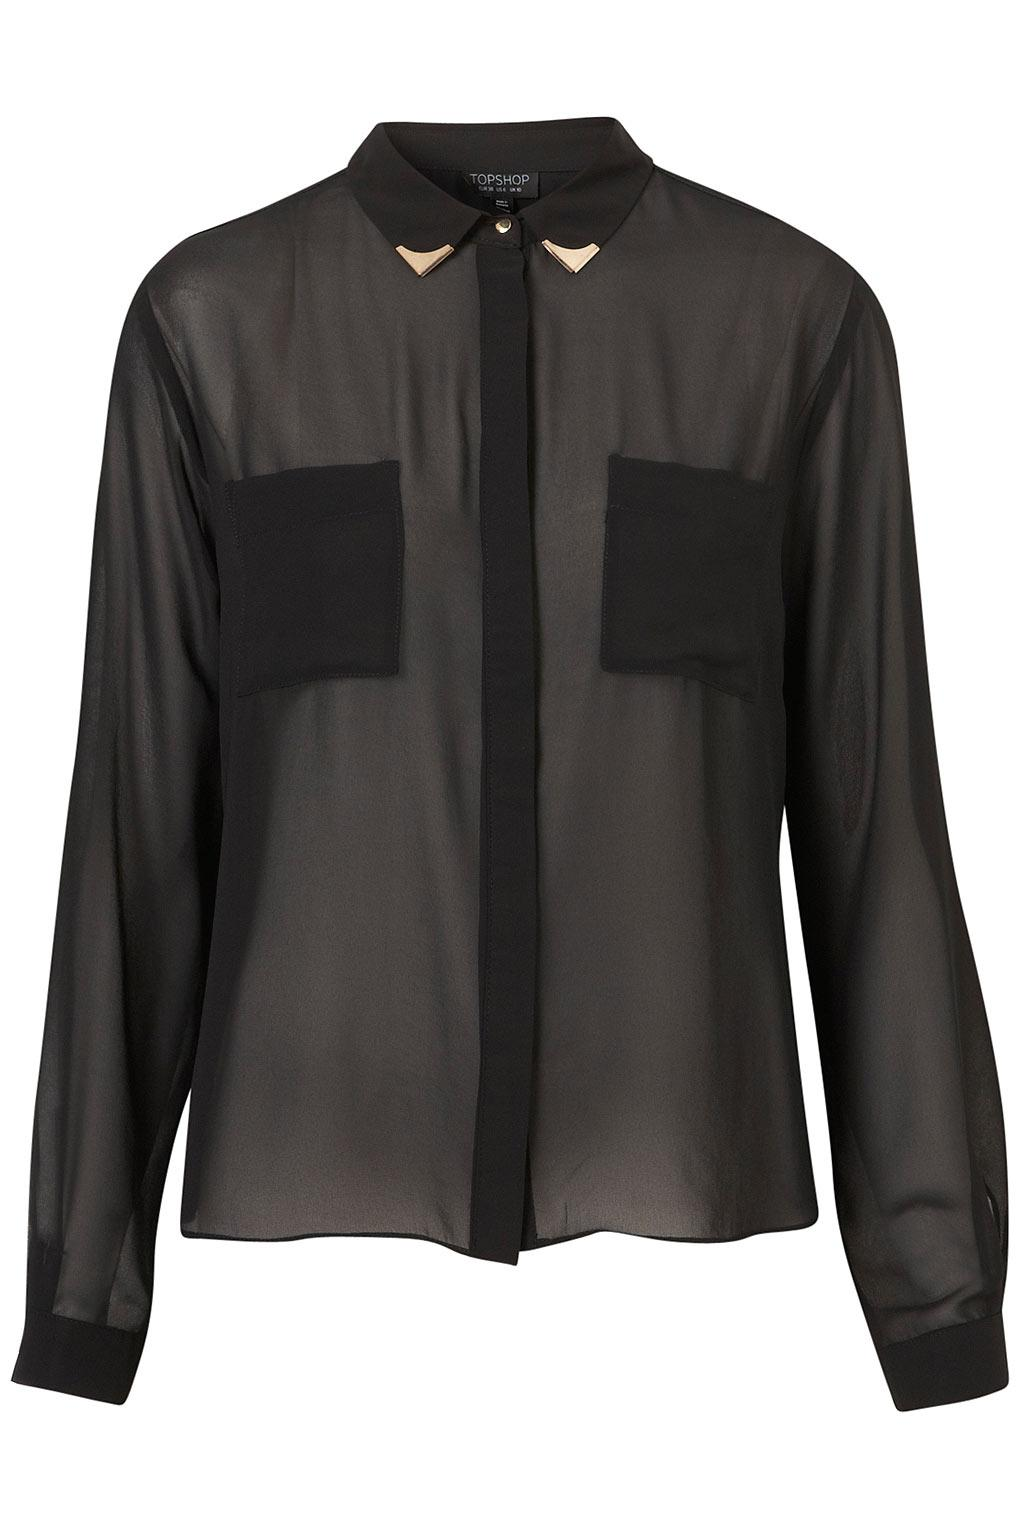 Longsleeve Collar Tip Shirt - Sensationalist - Collections - Topshop